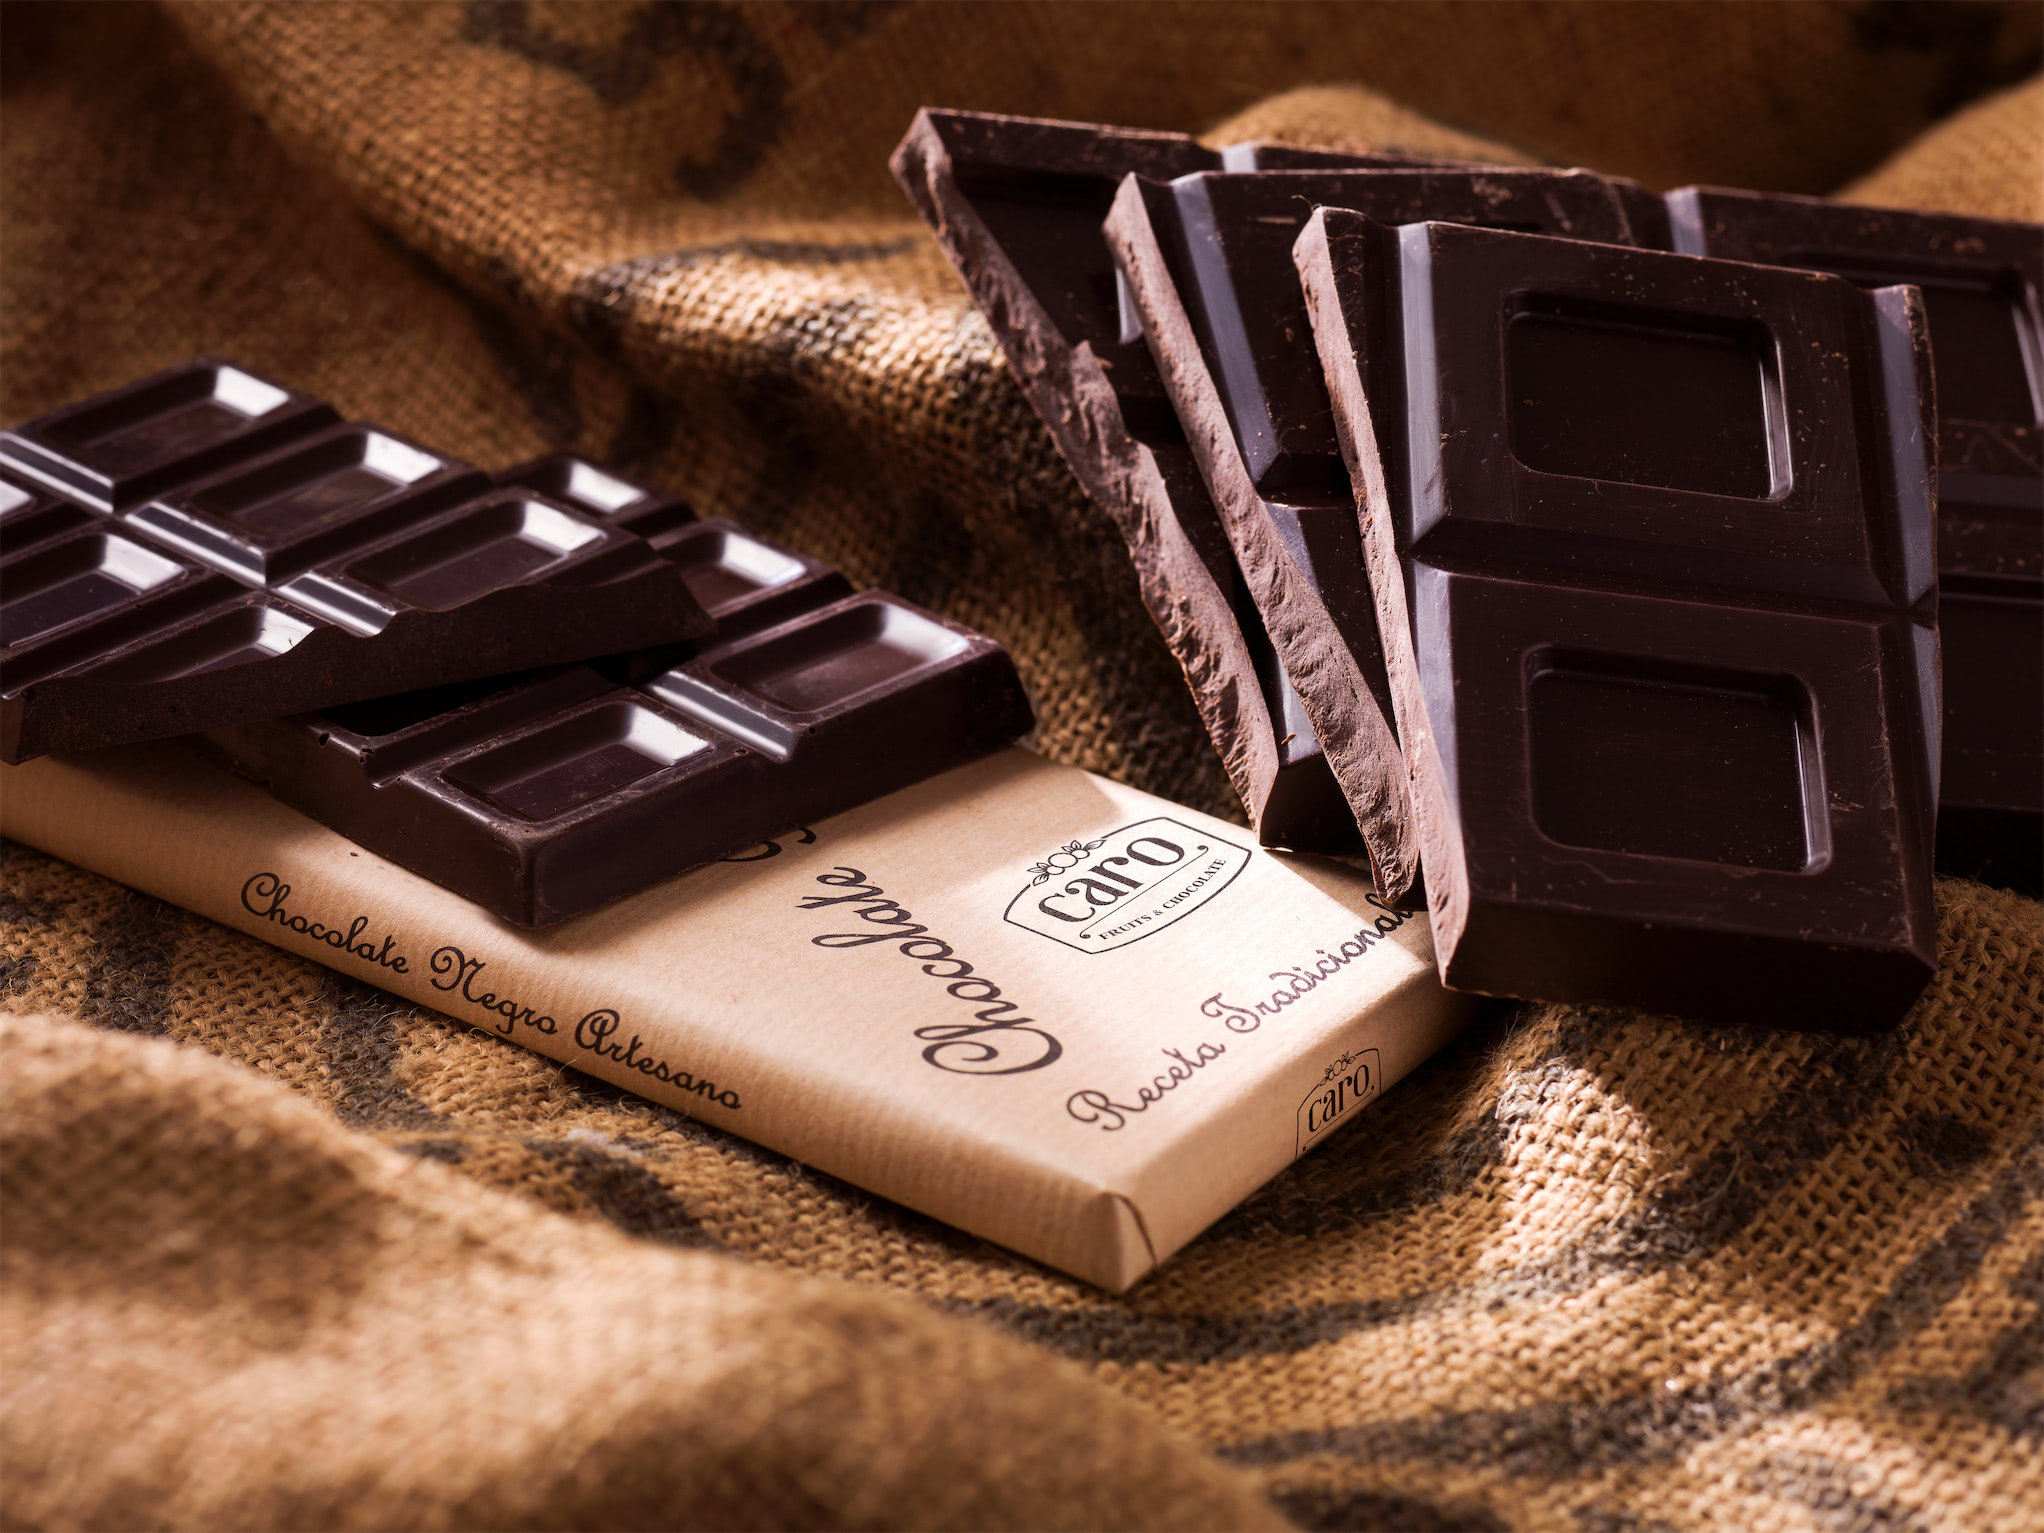 Caro 68% Dark Chocolate Bar